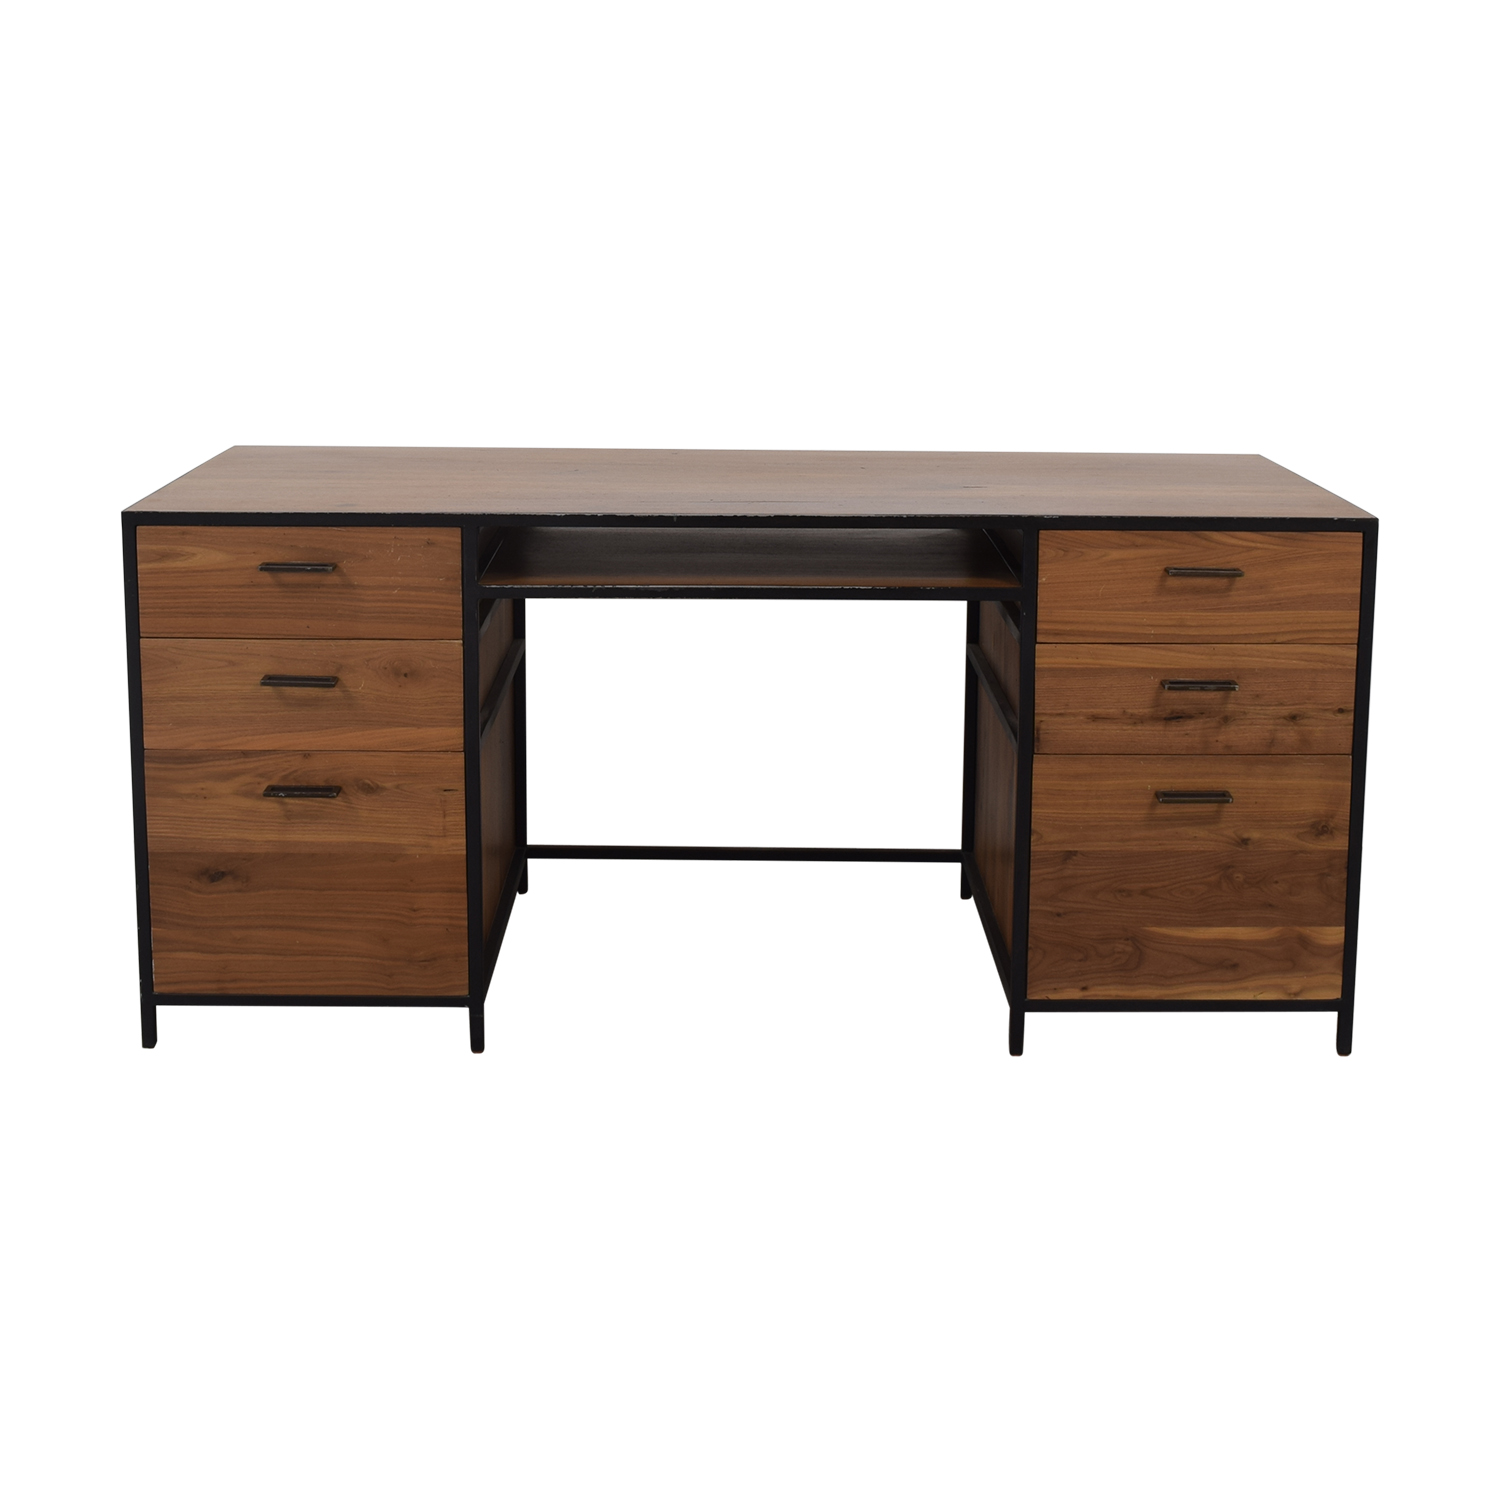 West Elm West Elm Industrial Office Desk dimensions